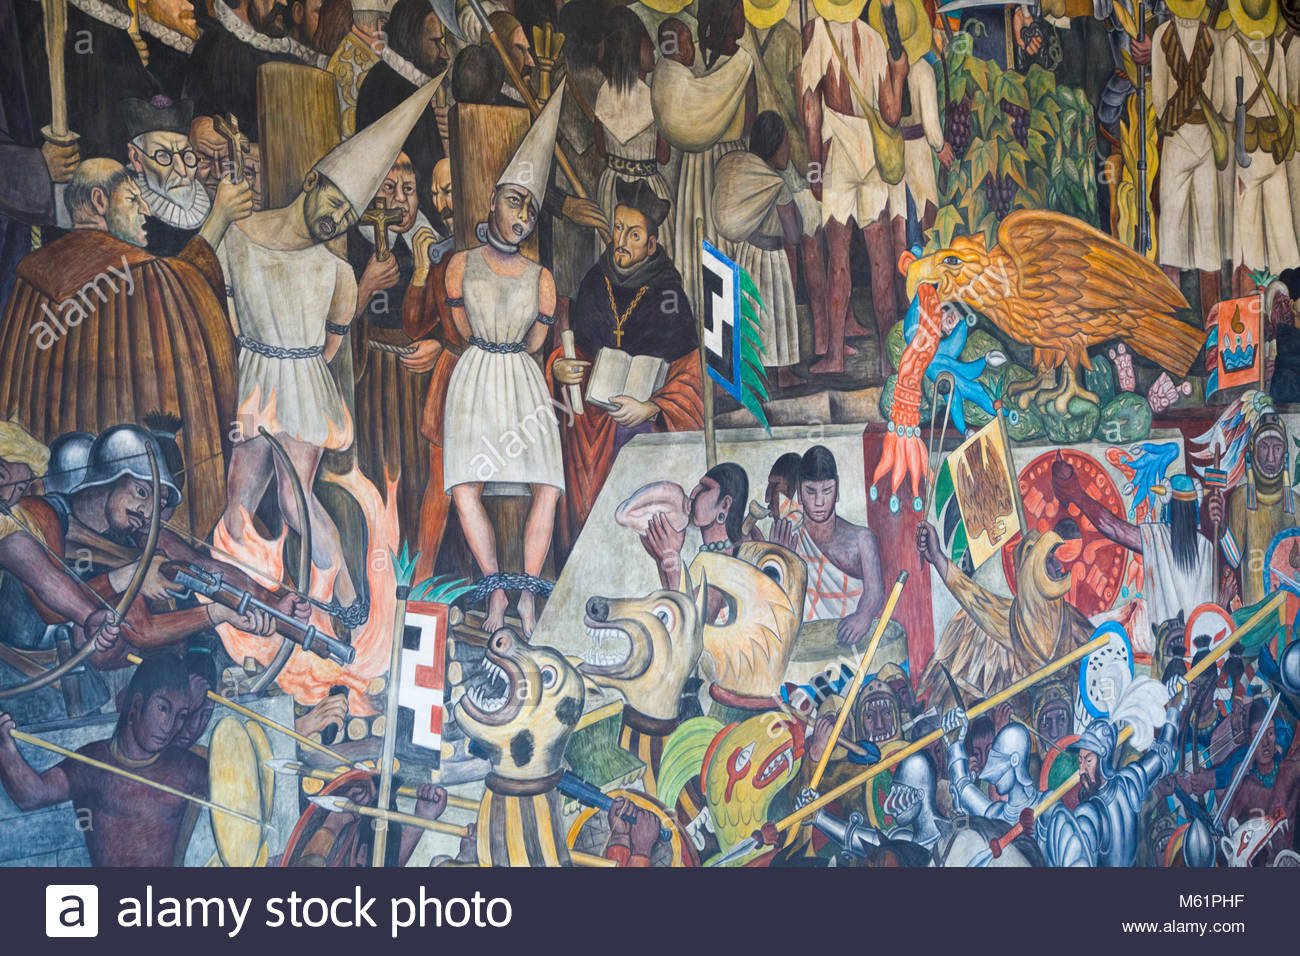 Diego rivera murals mexico city stock photos diego for Diego rivera mural 1929